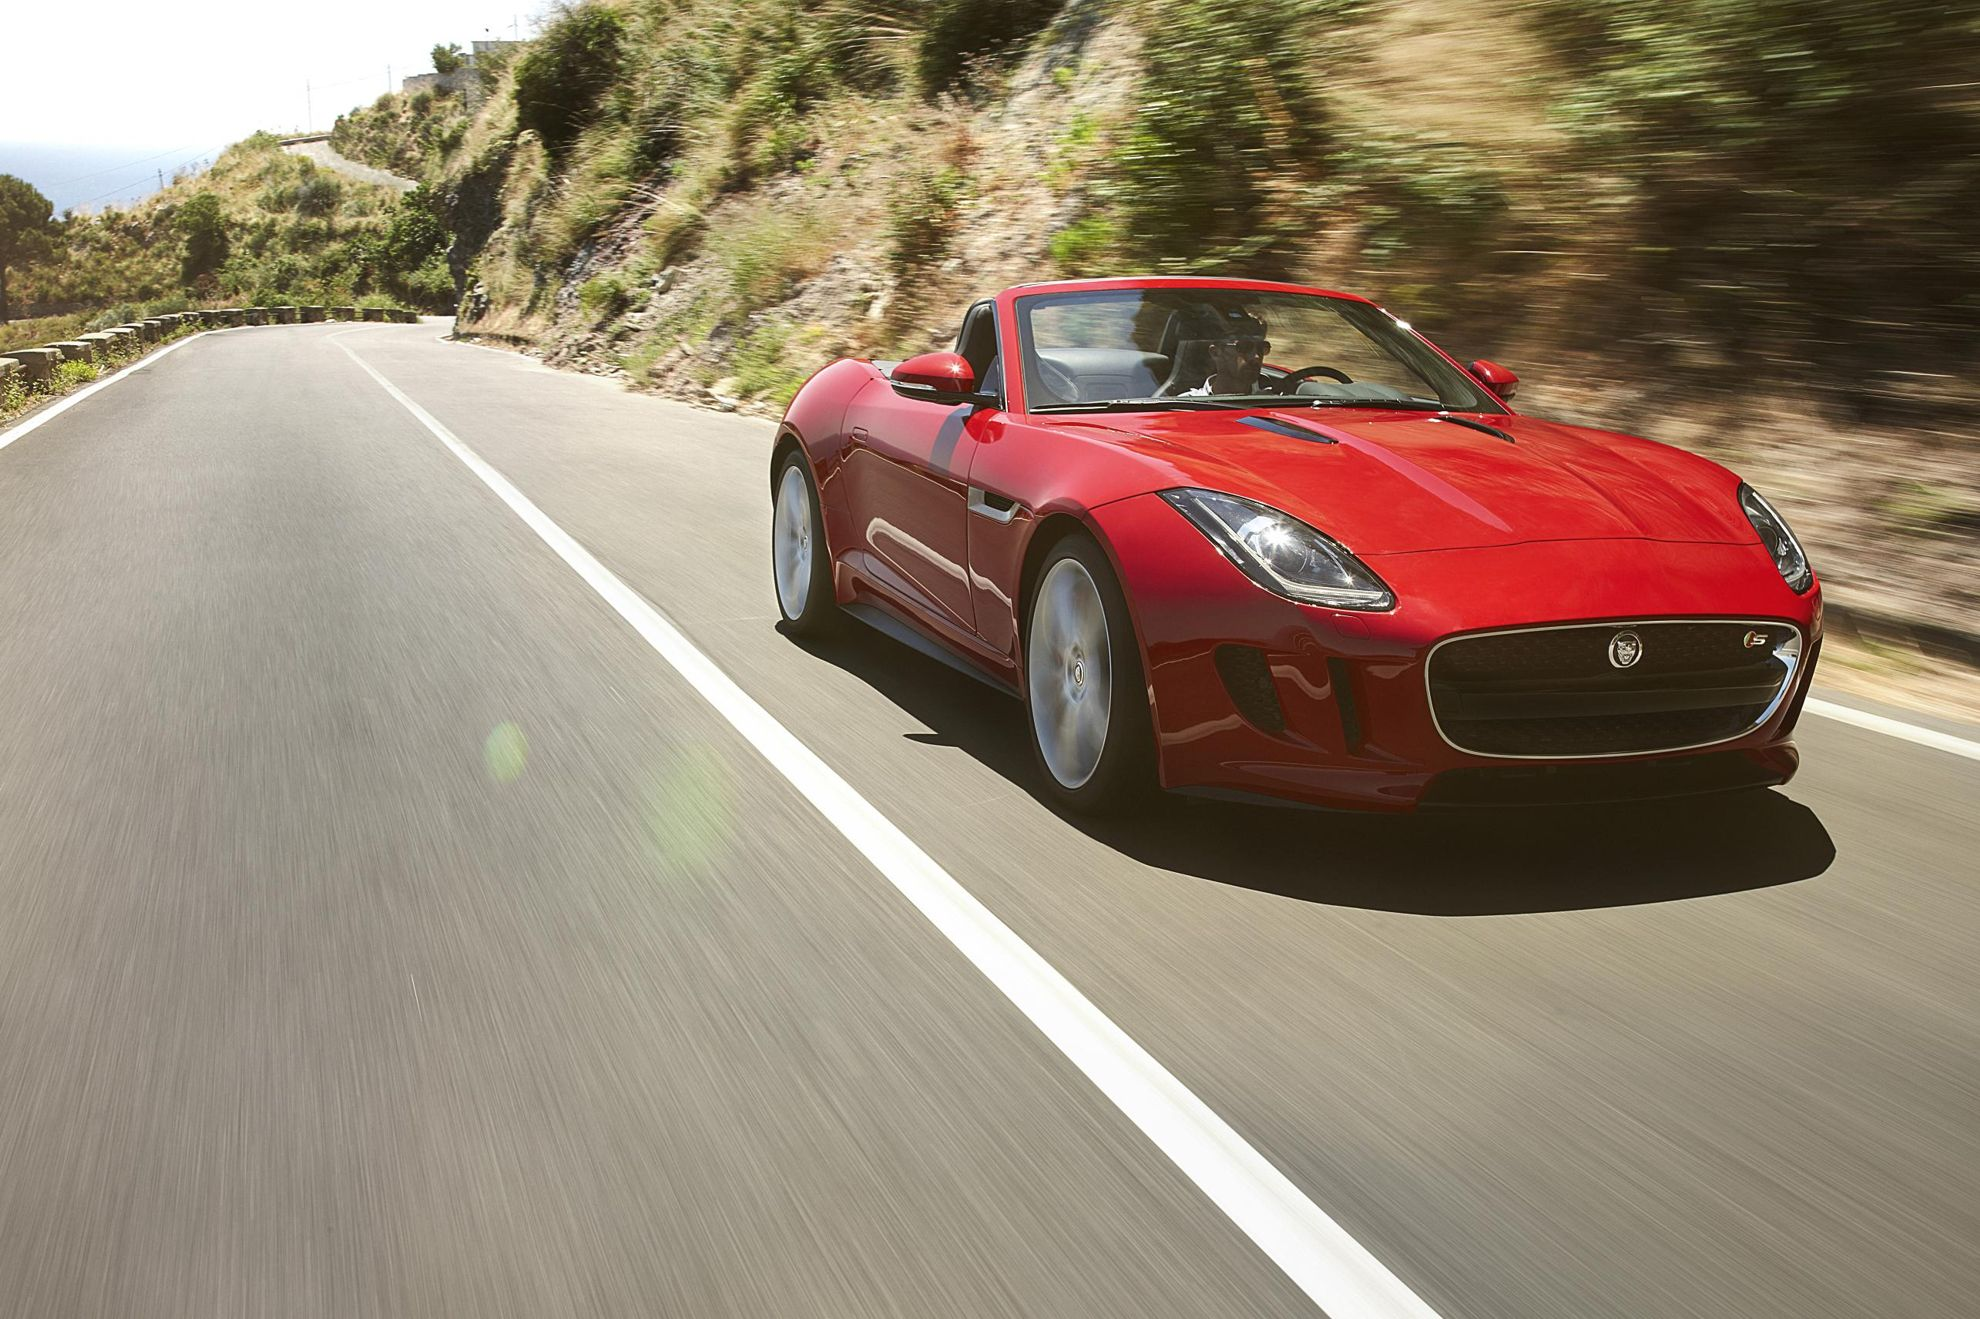 JAGUAR F TYPE COLLECTS BBC TOPGEAR MAGAZINE U0027CONVERTIBLE OF THE YEARu0027 AWARD  AS 2013 HONOURS CONTINUE